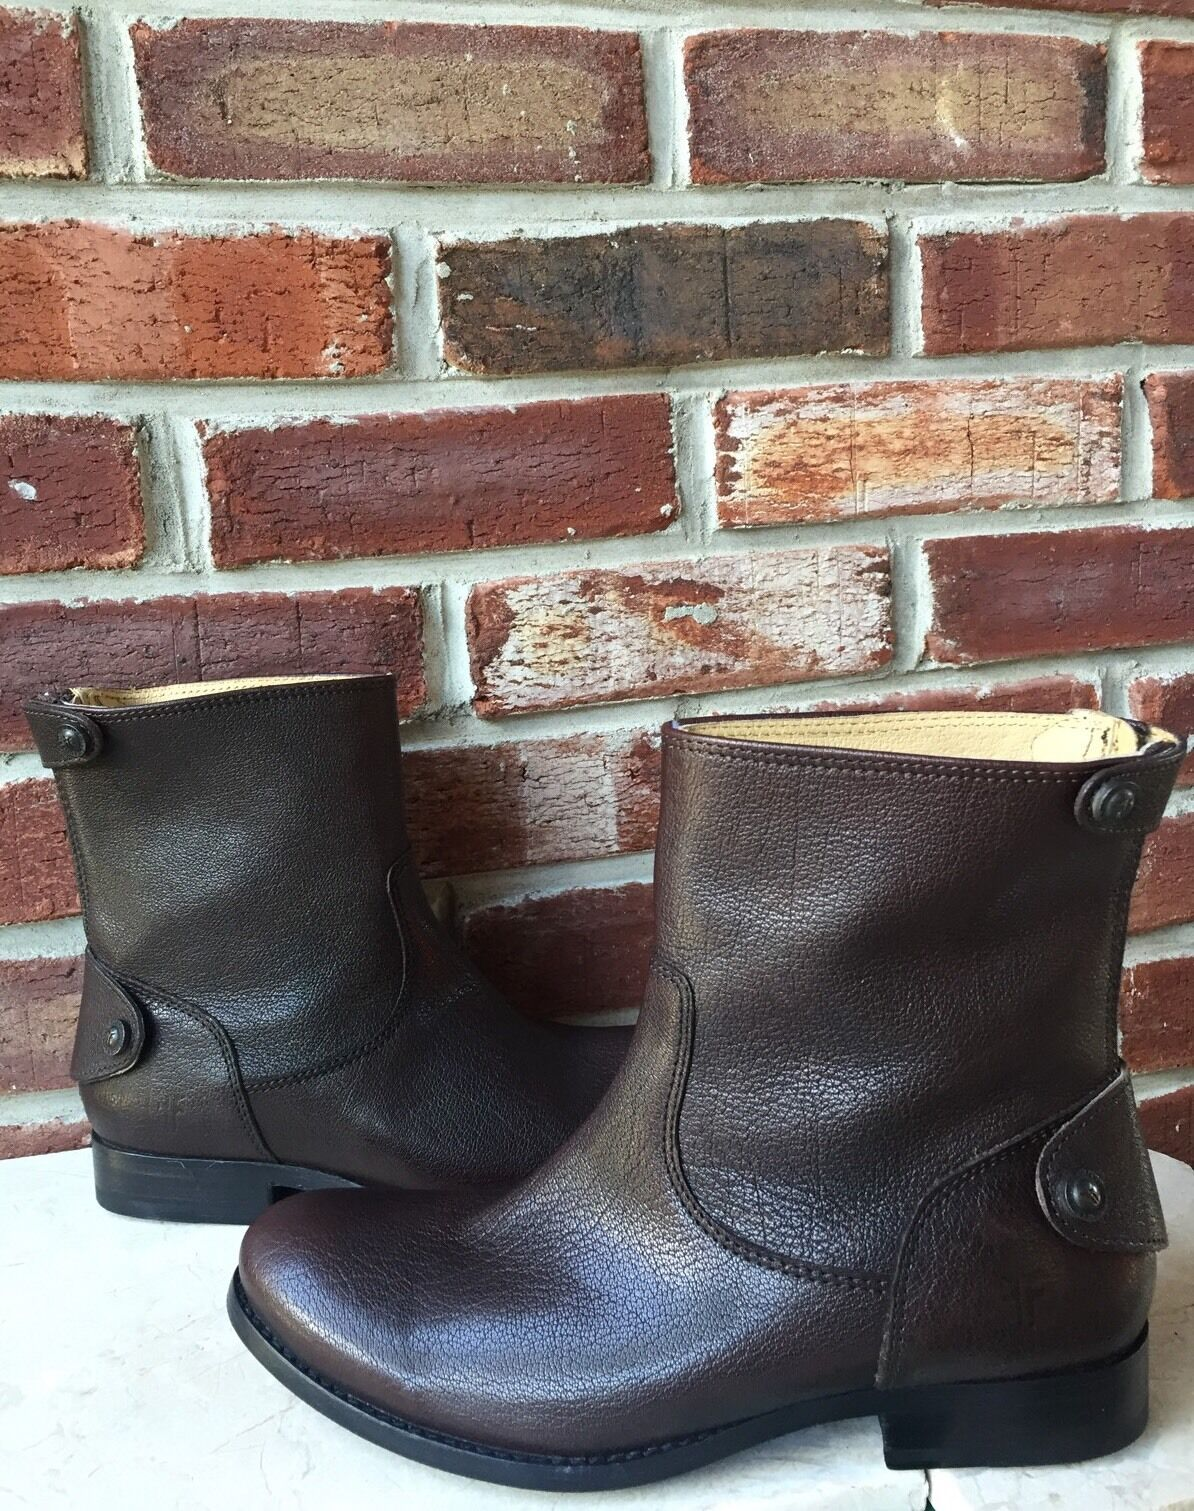 318 FRYE Melissa Melissa Melissa Button Back Zip Short braun Antique Leather Stiefel 6.5 CLASSIC 26e93f